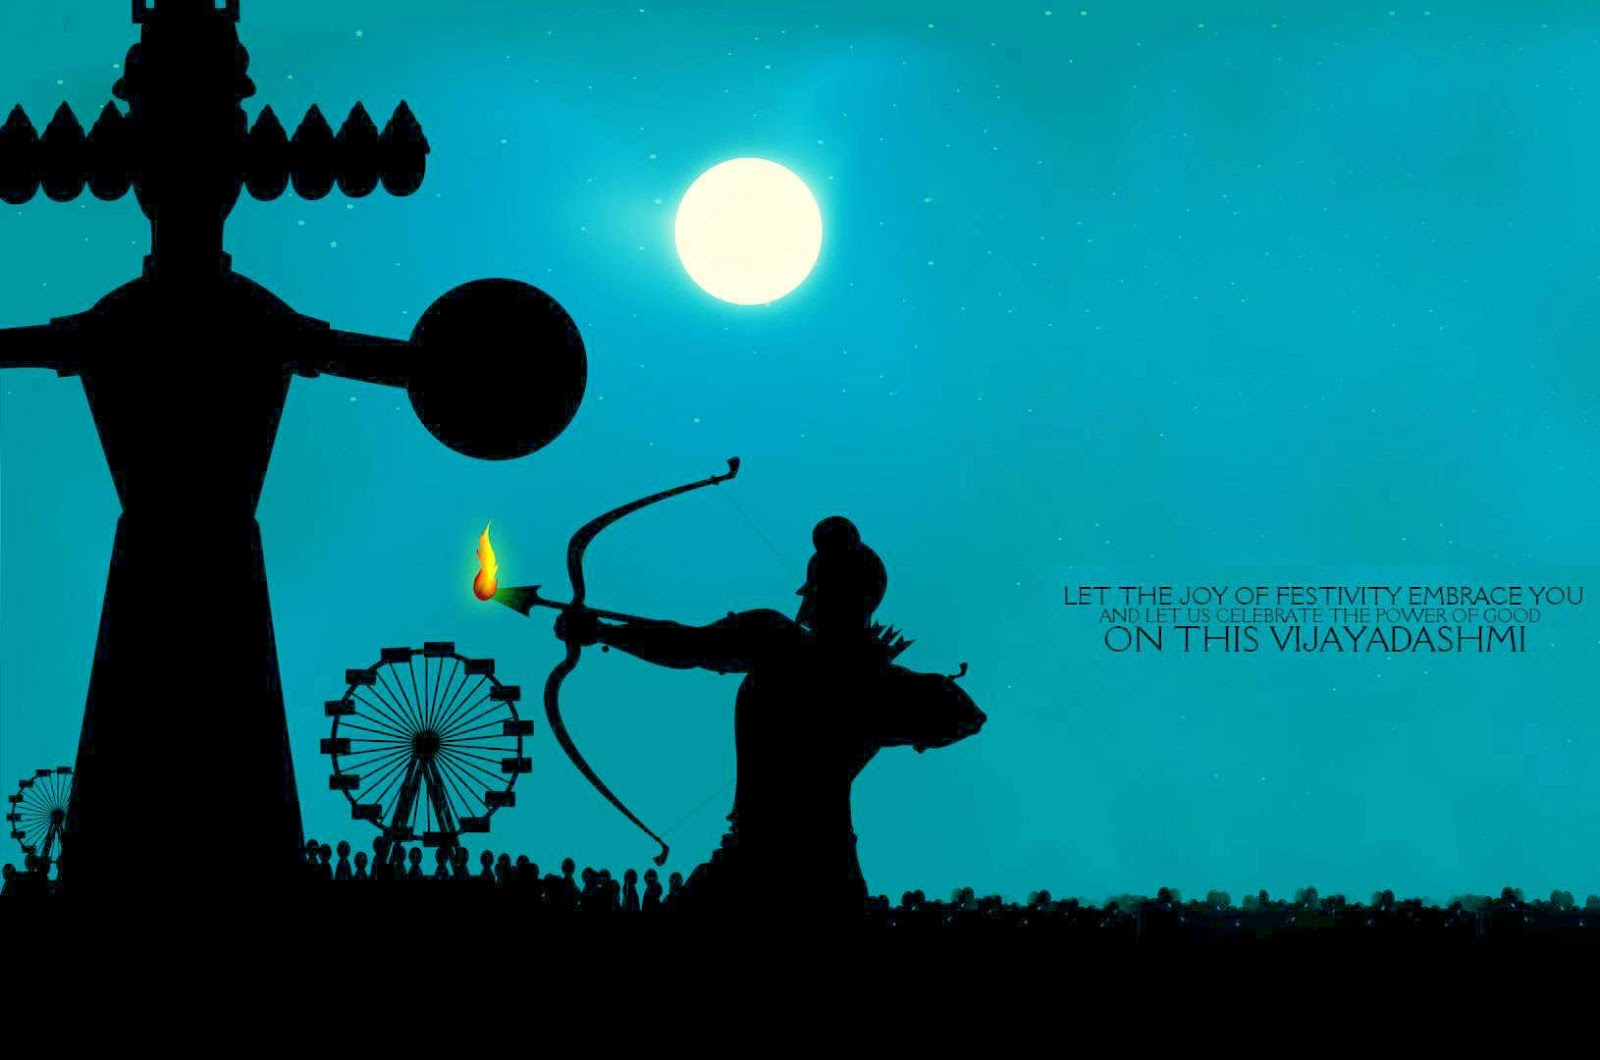 Happy dussehra 2017 wishes images status best whatsapp status happy dussehra images pictures and wallpapers kristyandbryce Images